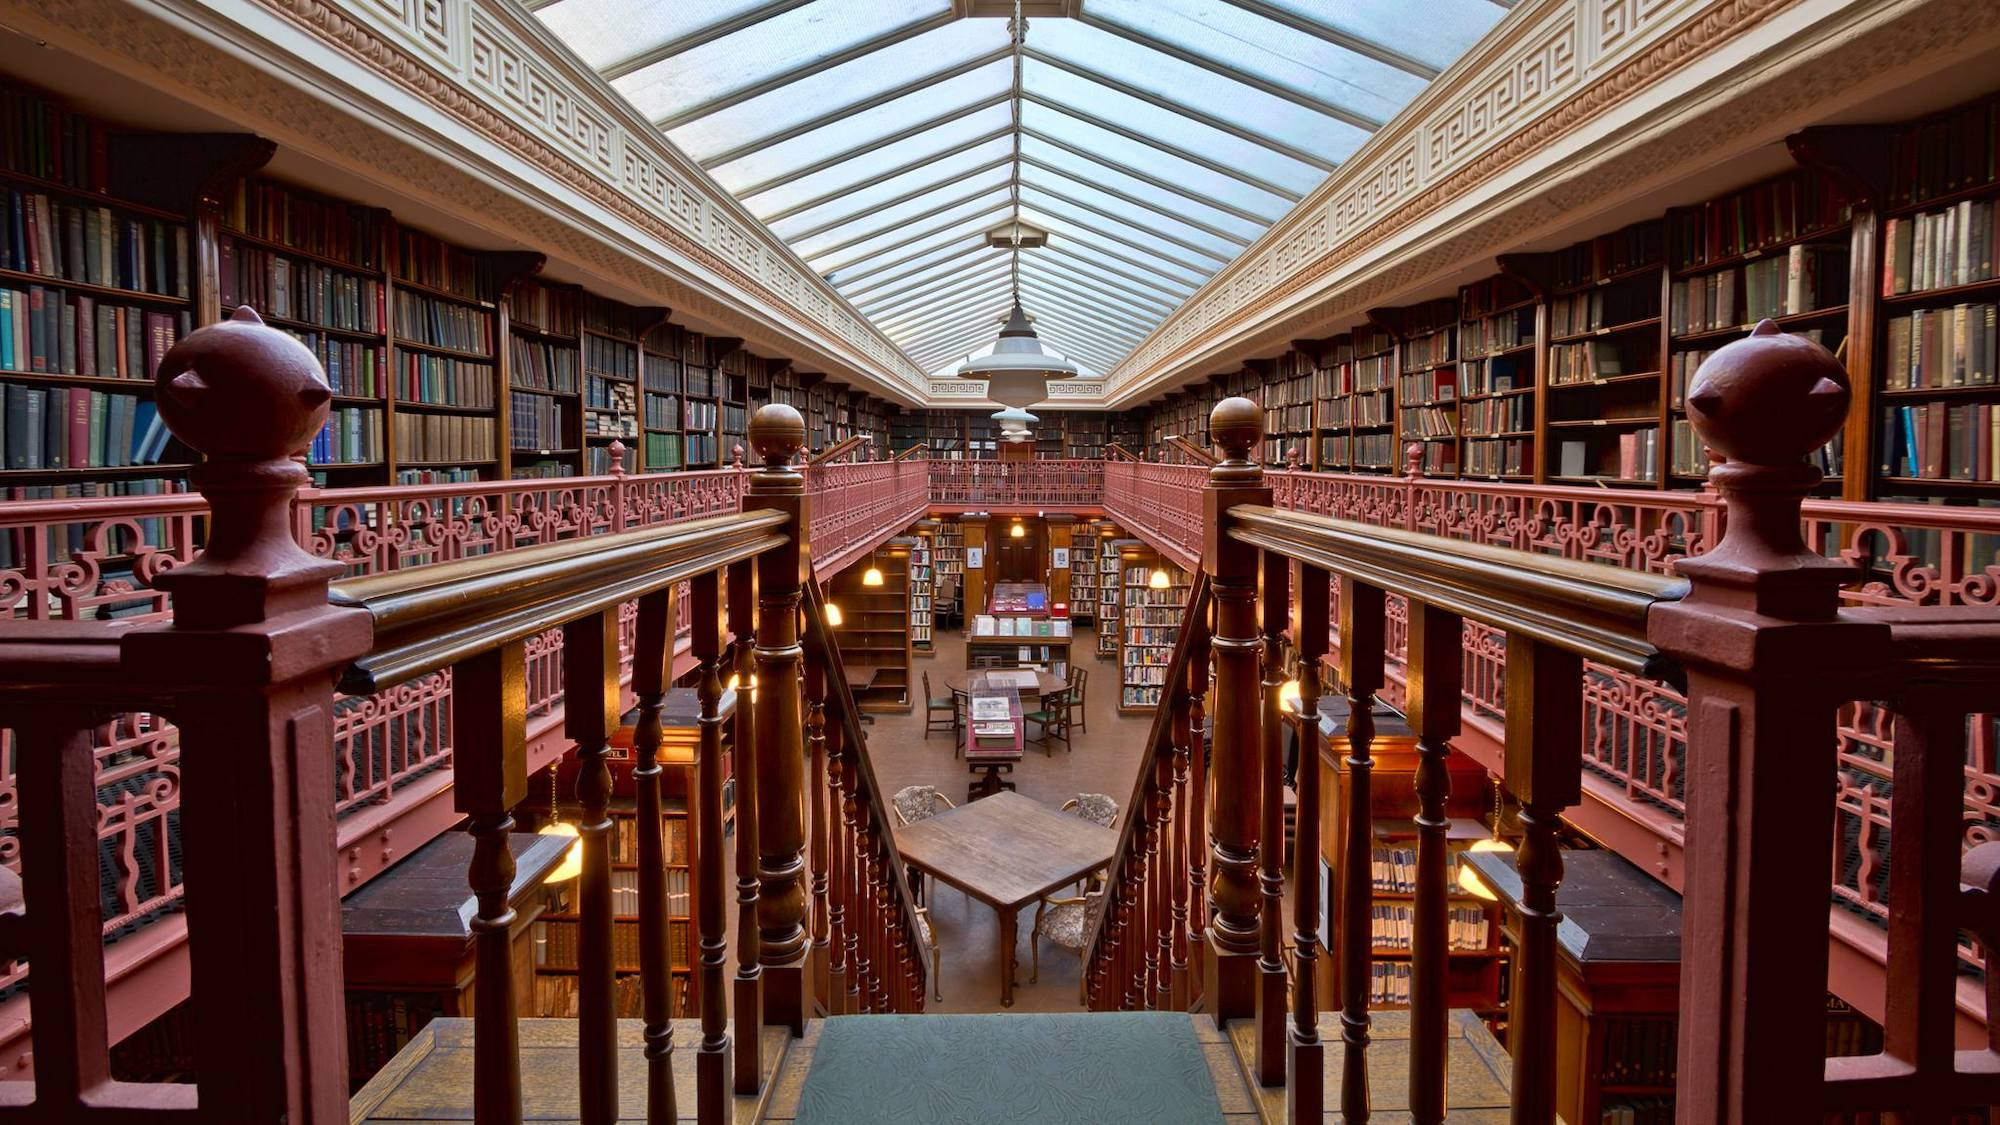 The Leeds Library